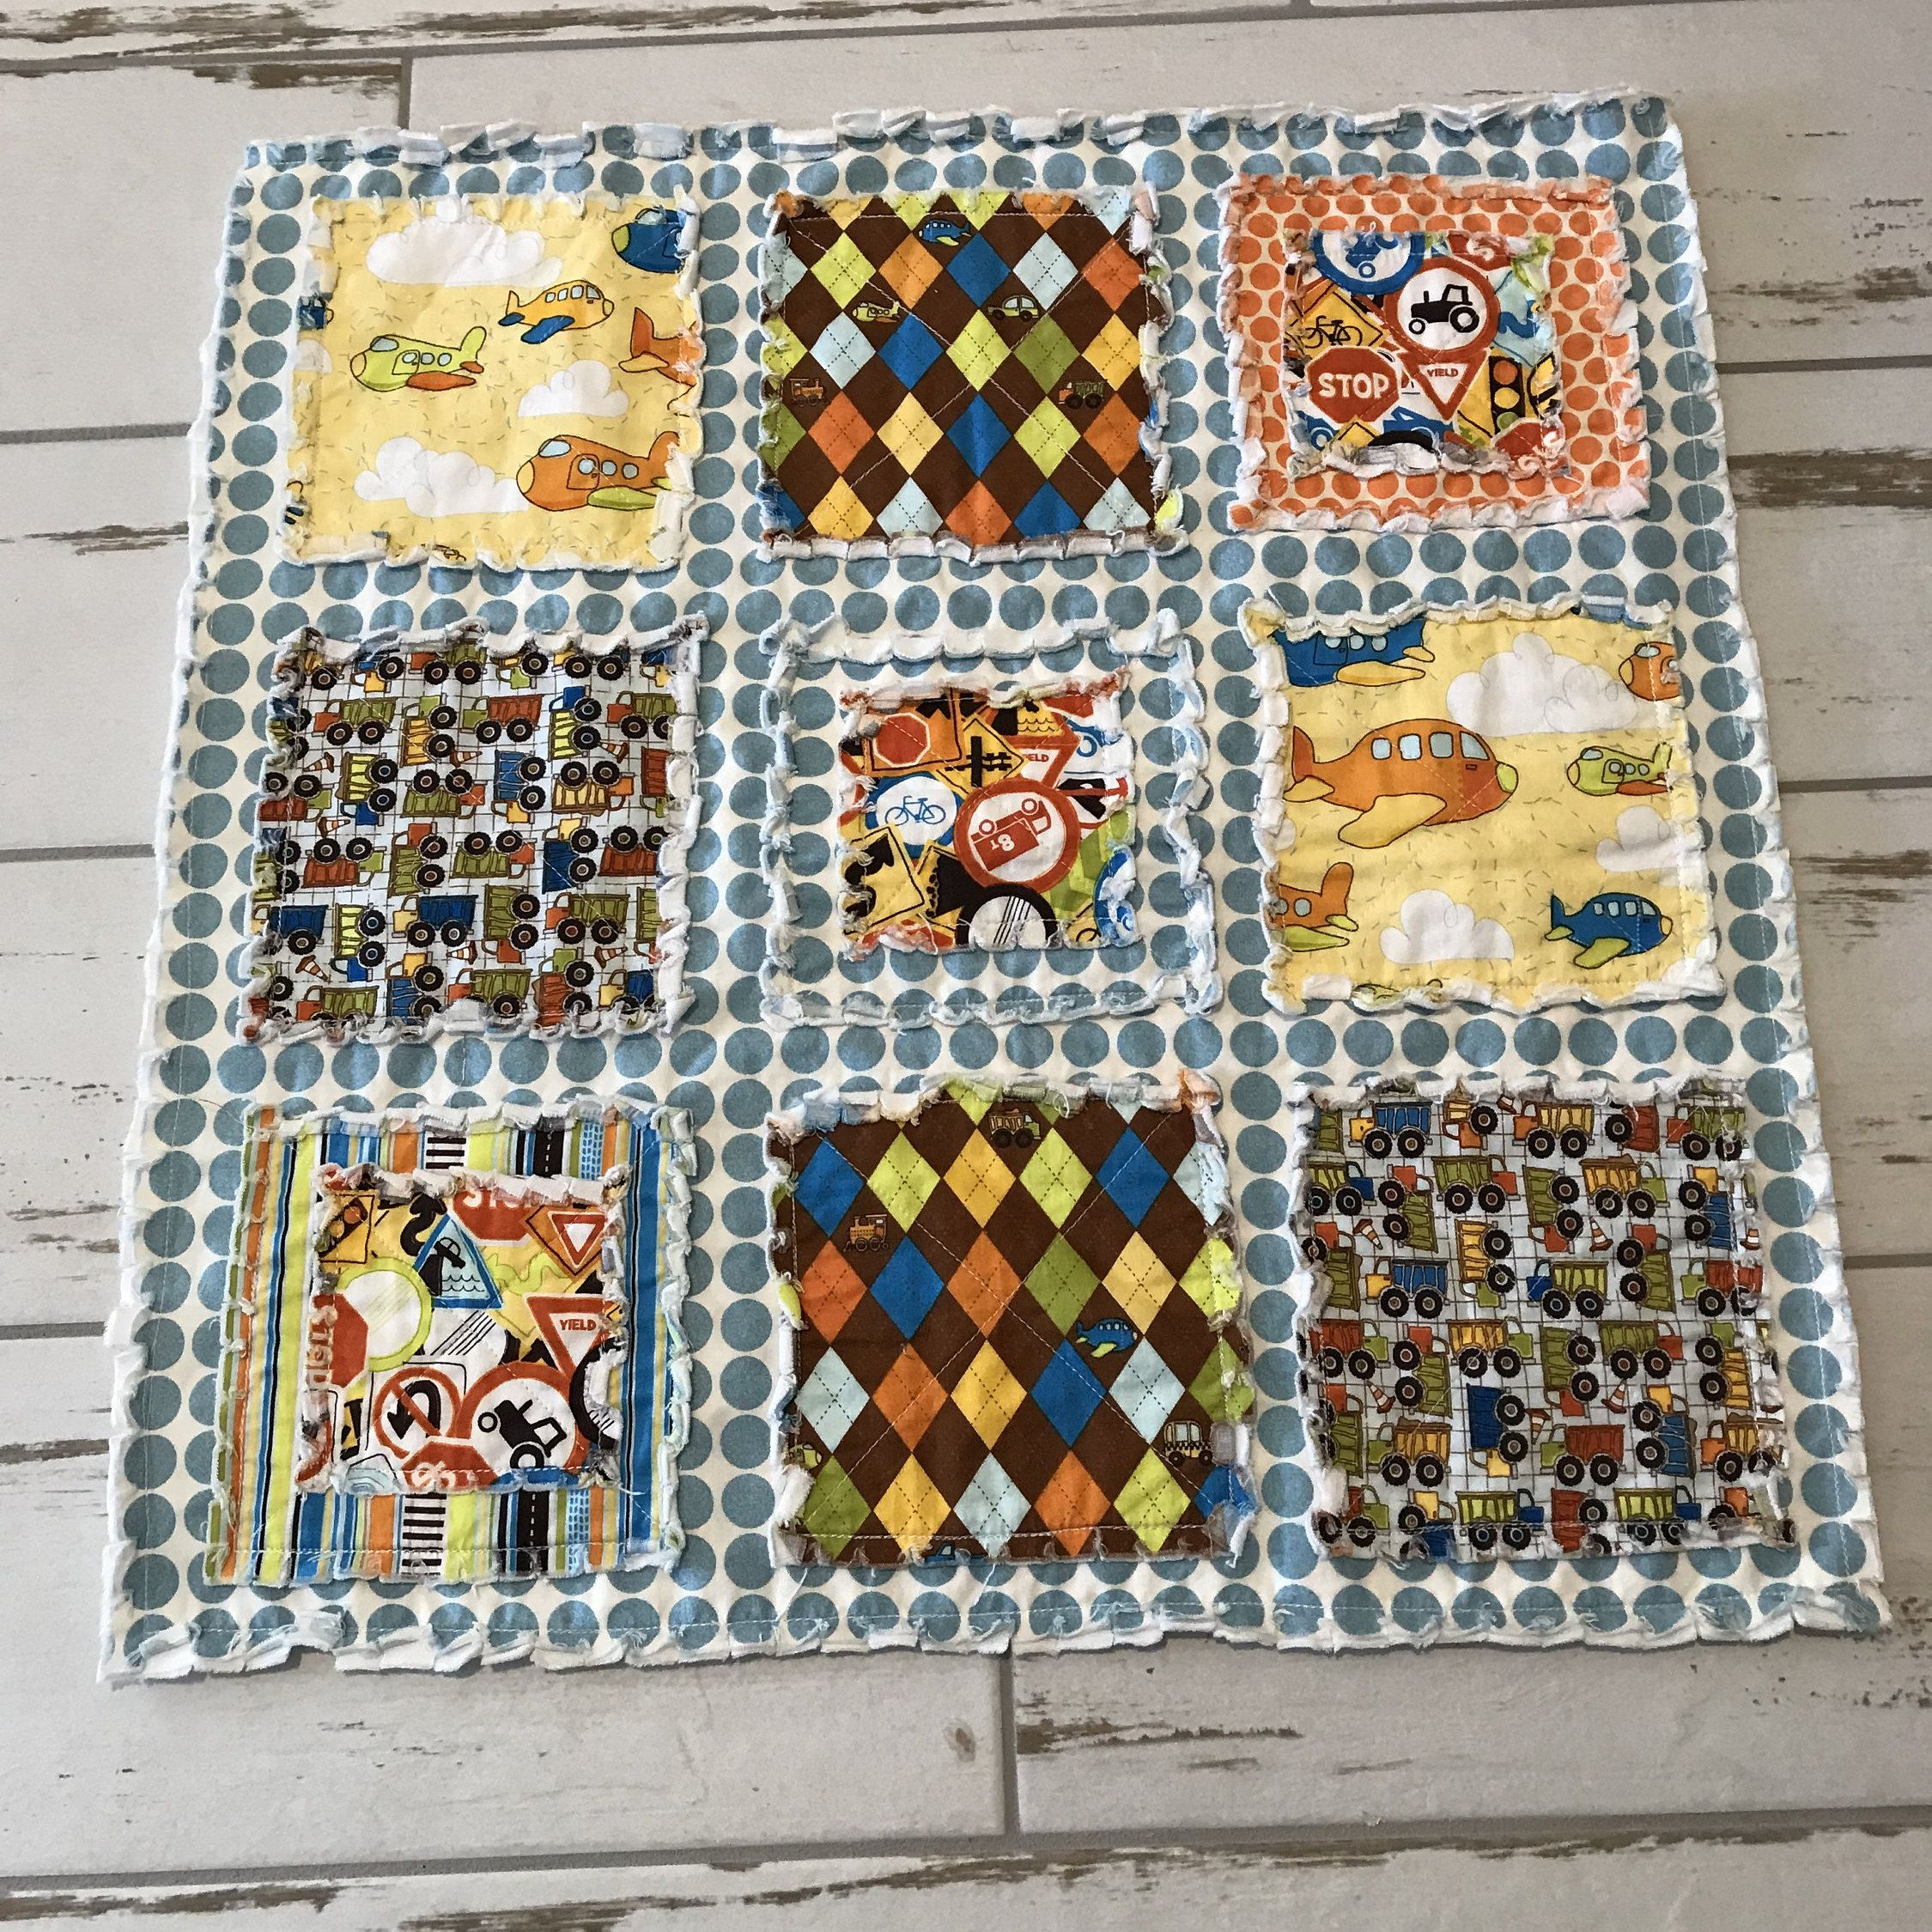 Rag Quilt Lovey/ Security blanket/ Minky Blanket/ I Spy Patch Blanket/ Toddler/ Baby Boy/ Airplanes/Trucks/ Ready to Ship.